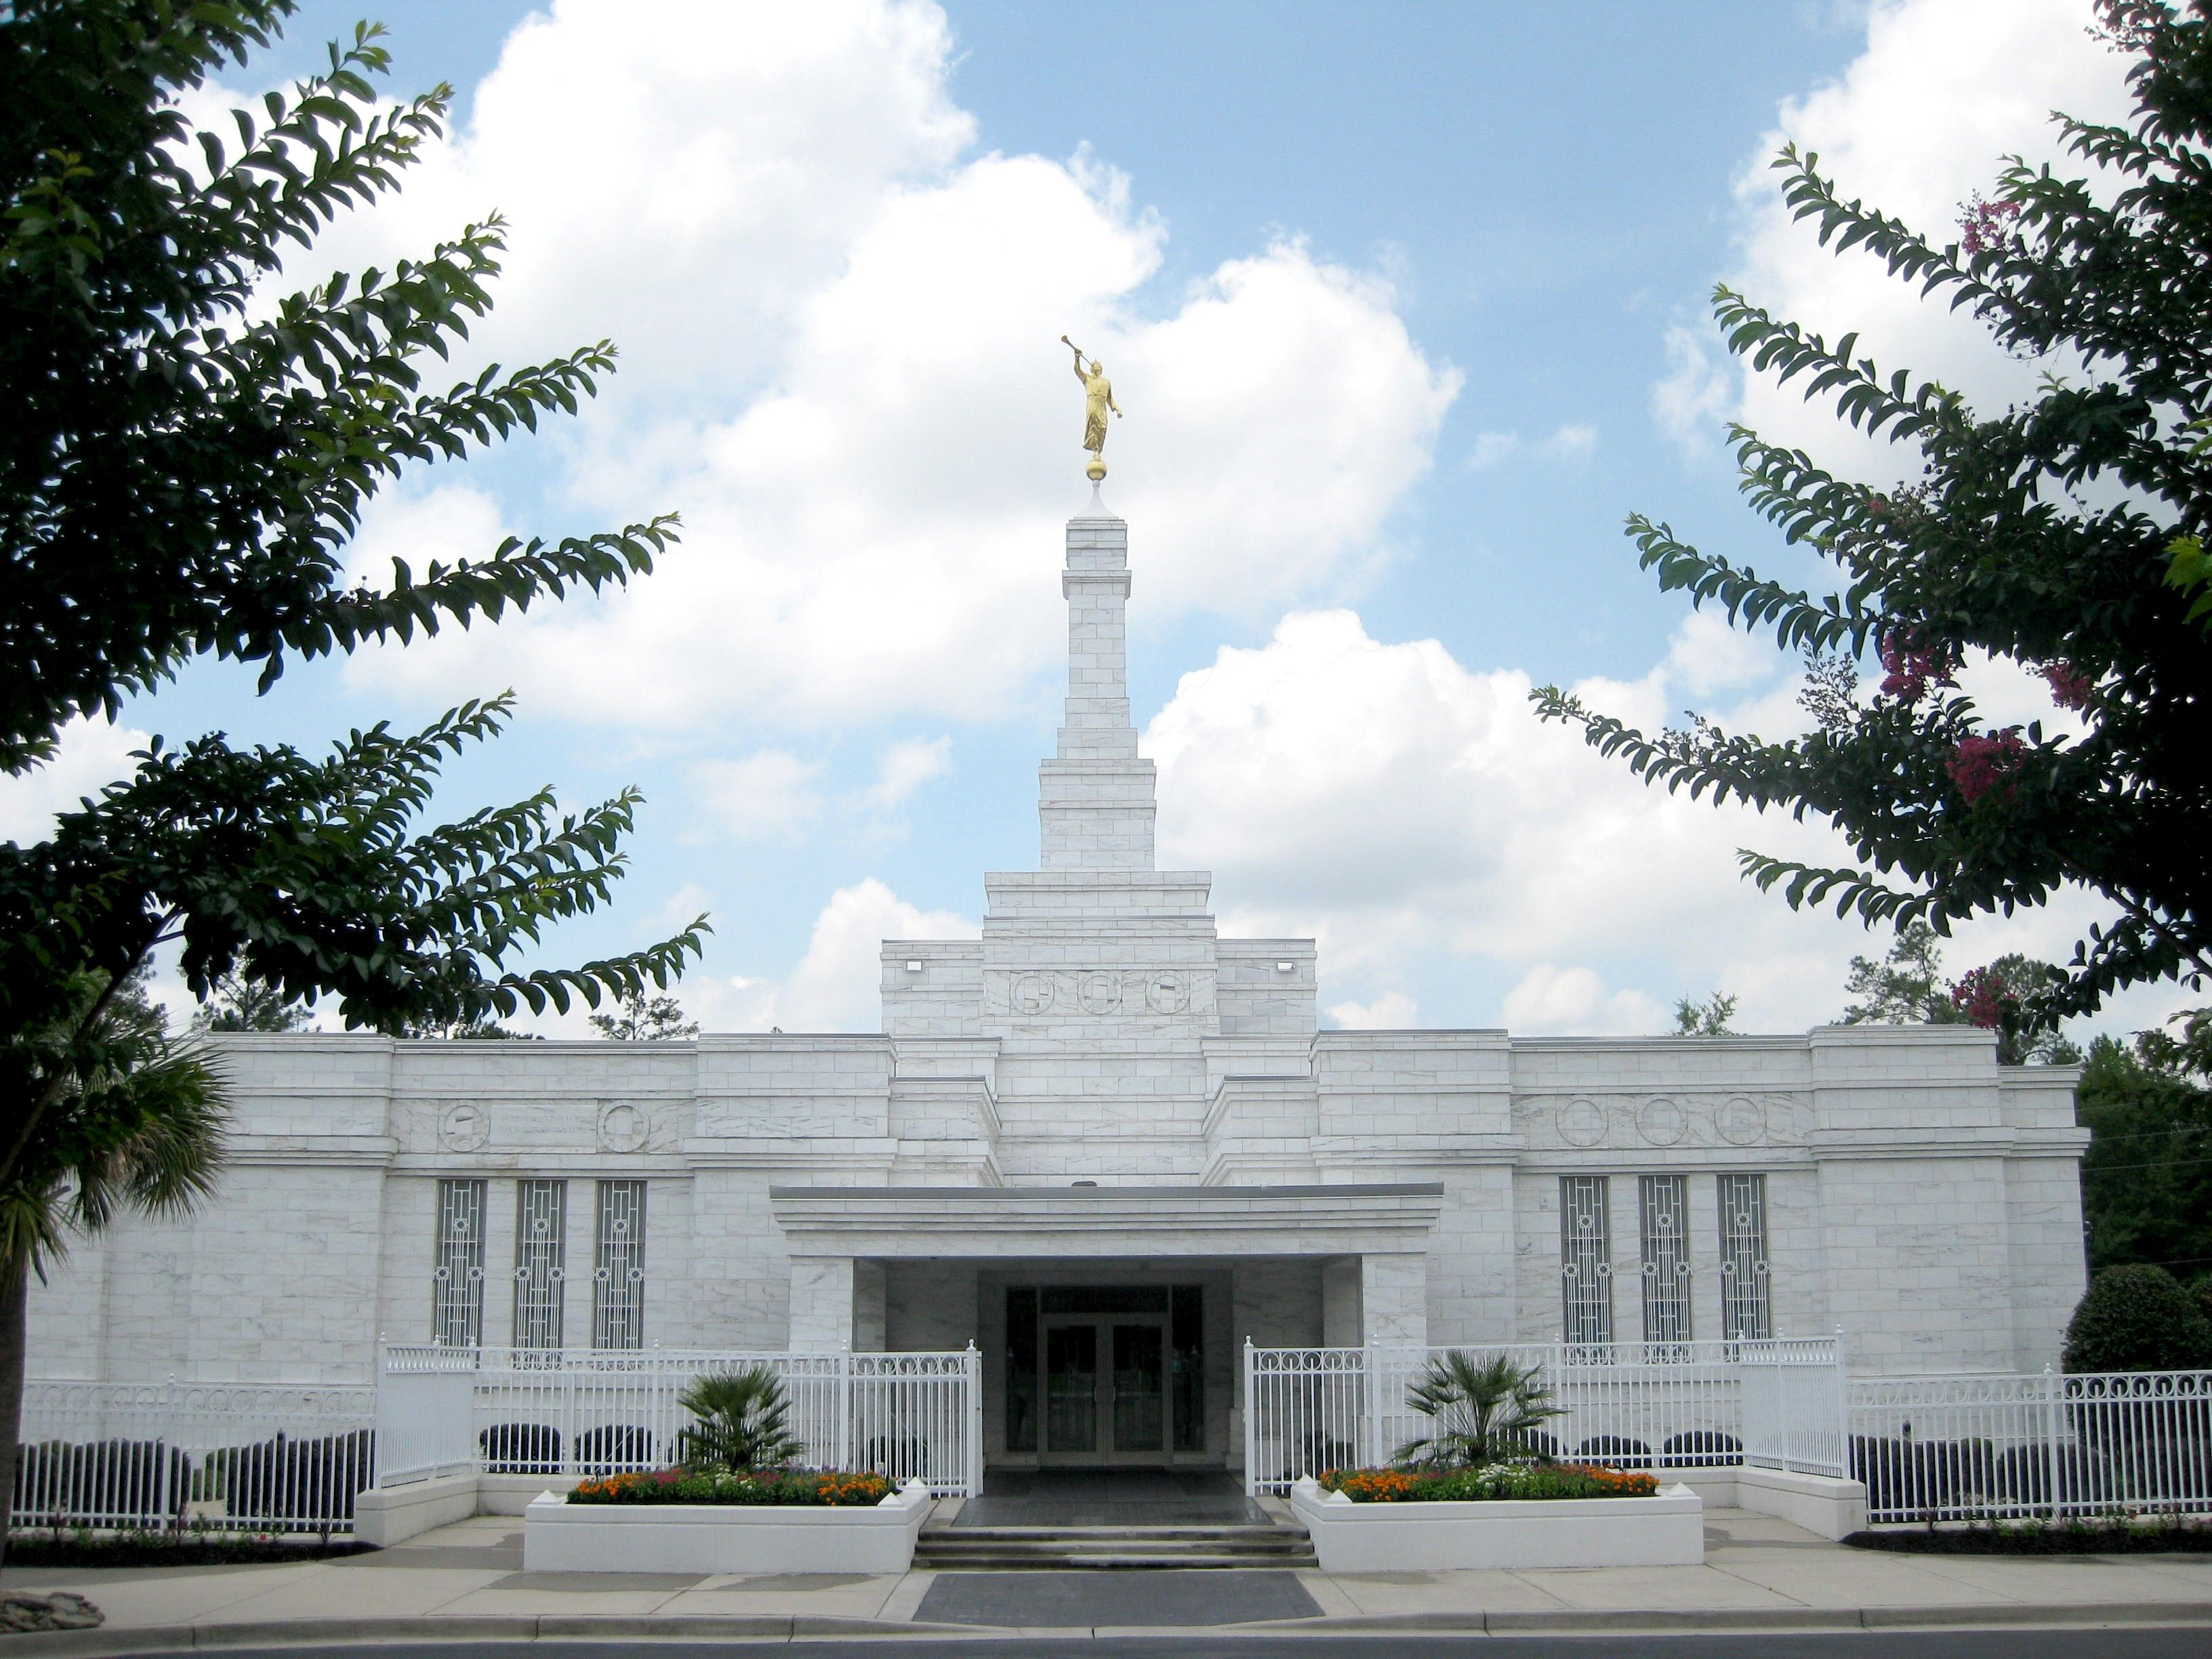 A view of the entrance to the Columbia South Carolina Temple.